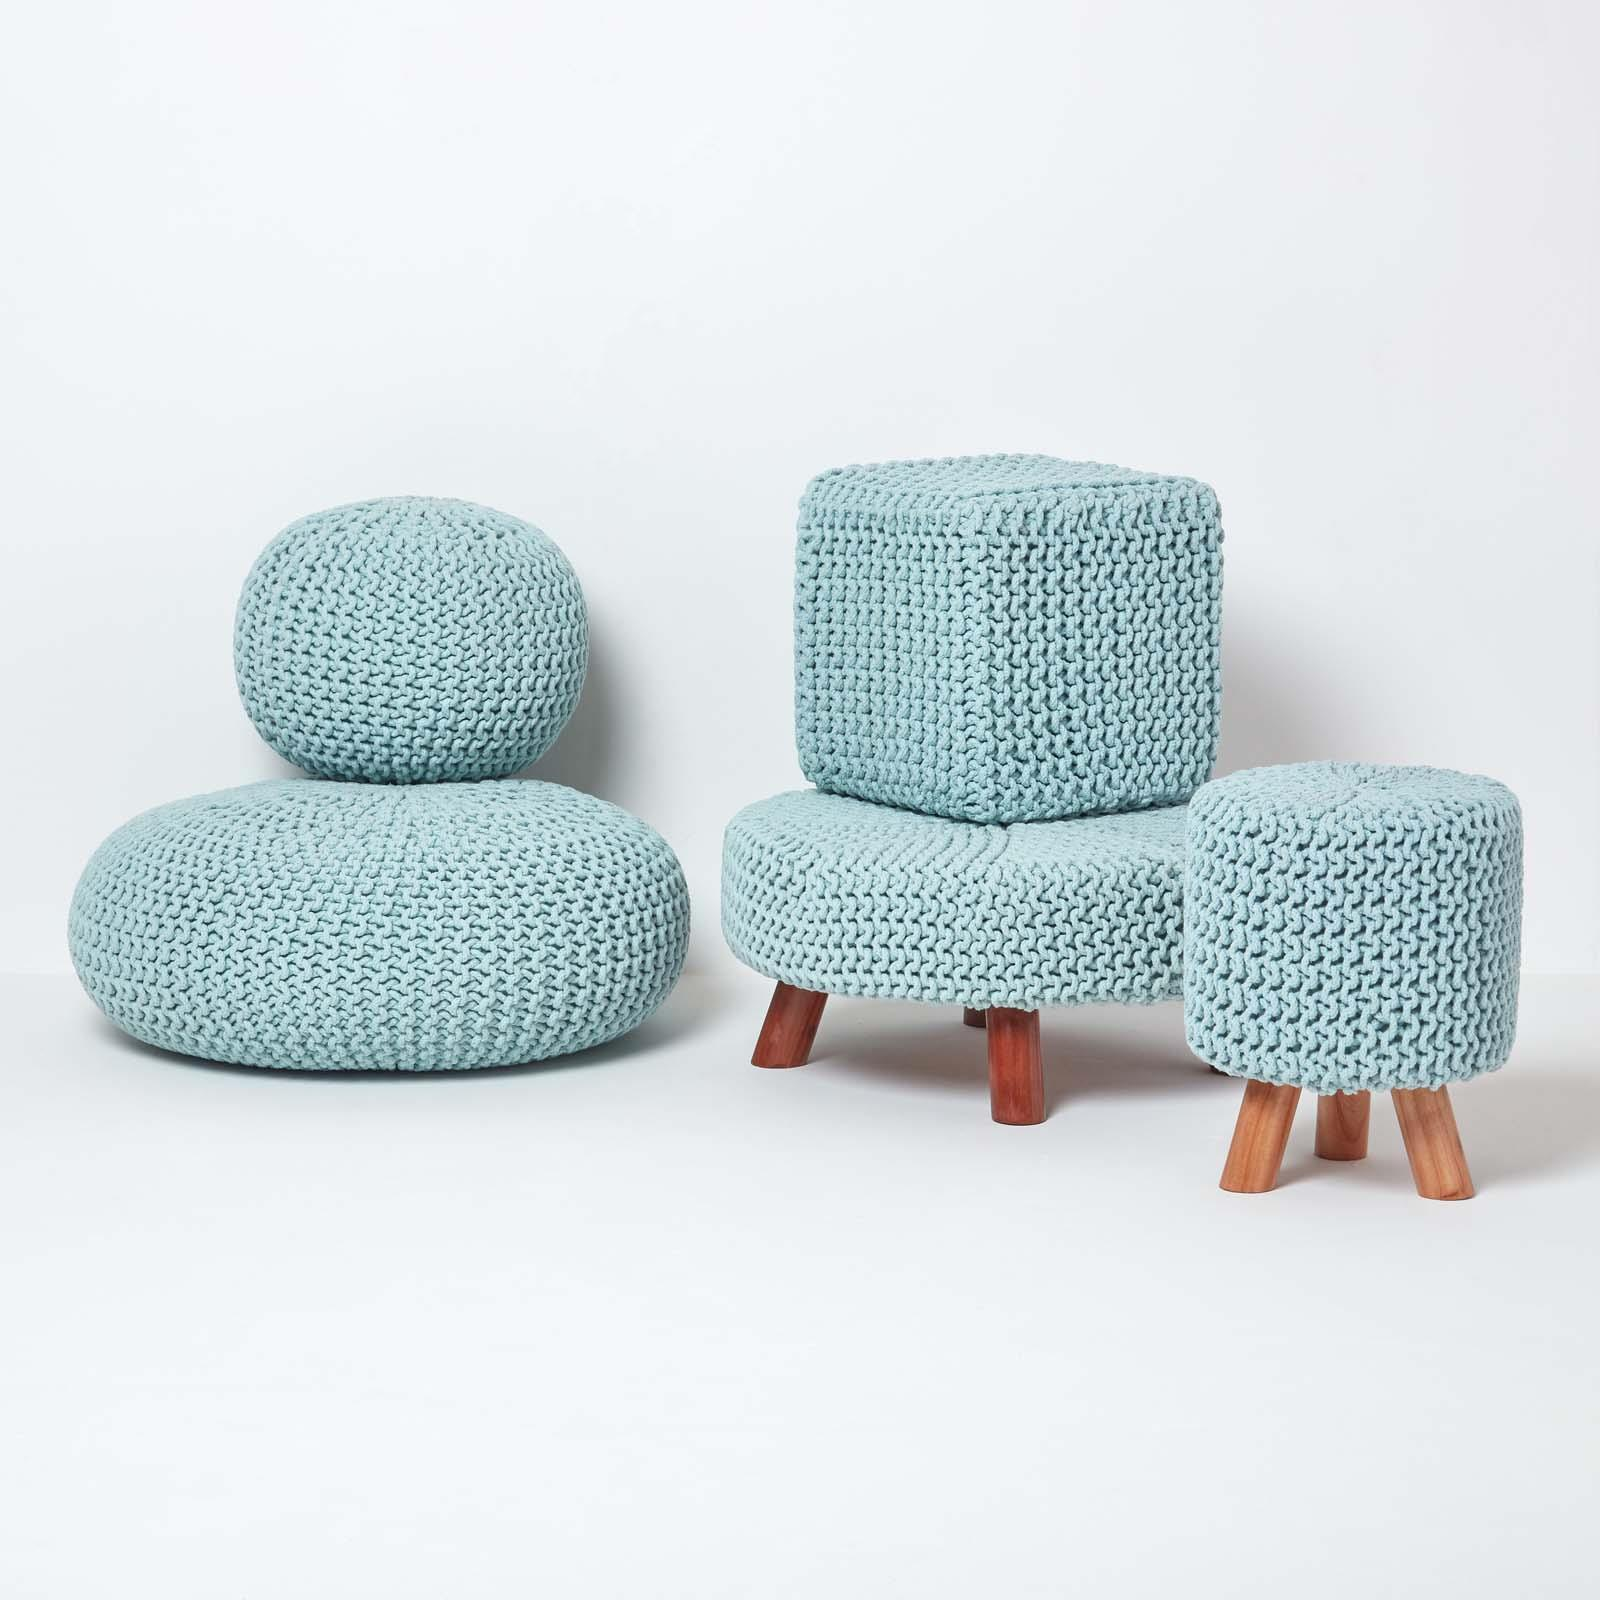 Hand-Knitted-100-Cotton-Pouffes-Round-Sphere-Or-Cube-Square-Chunky-Footstools thumbnail 132